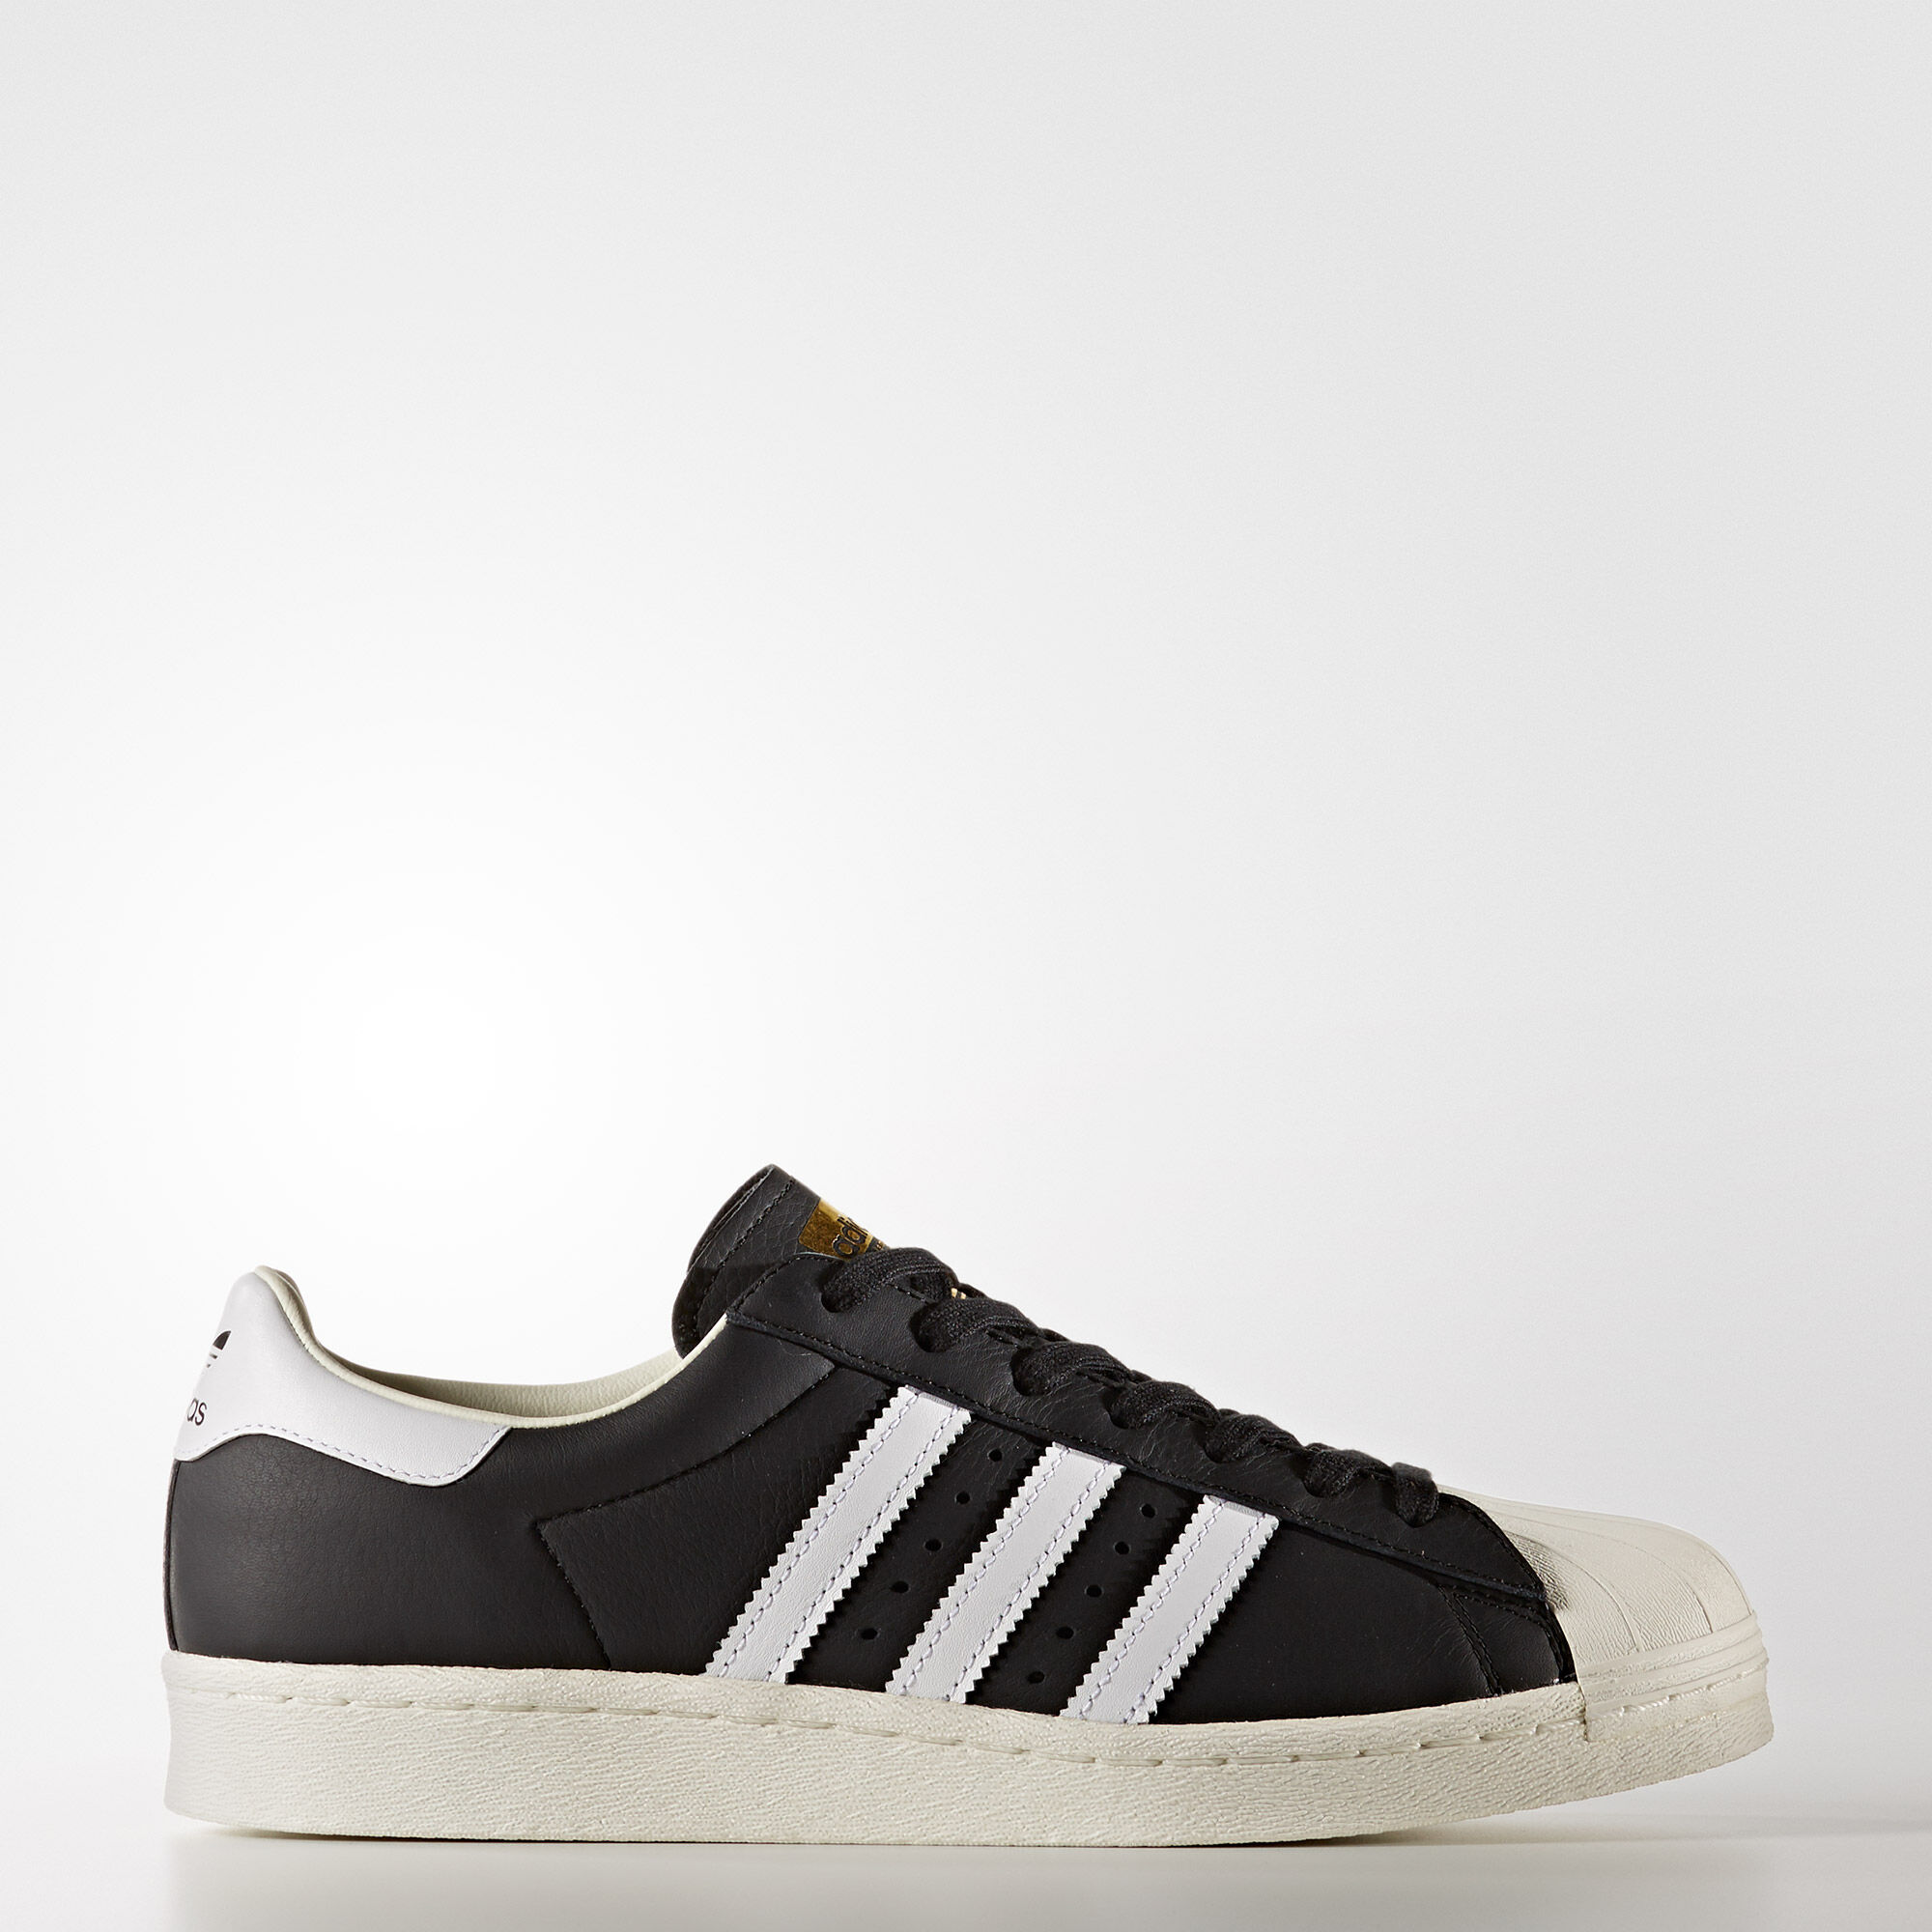 image: adidas superstar [3]